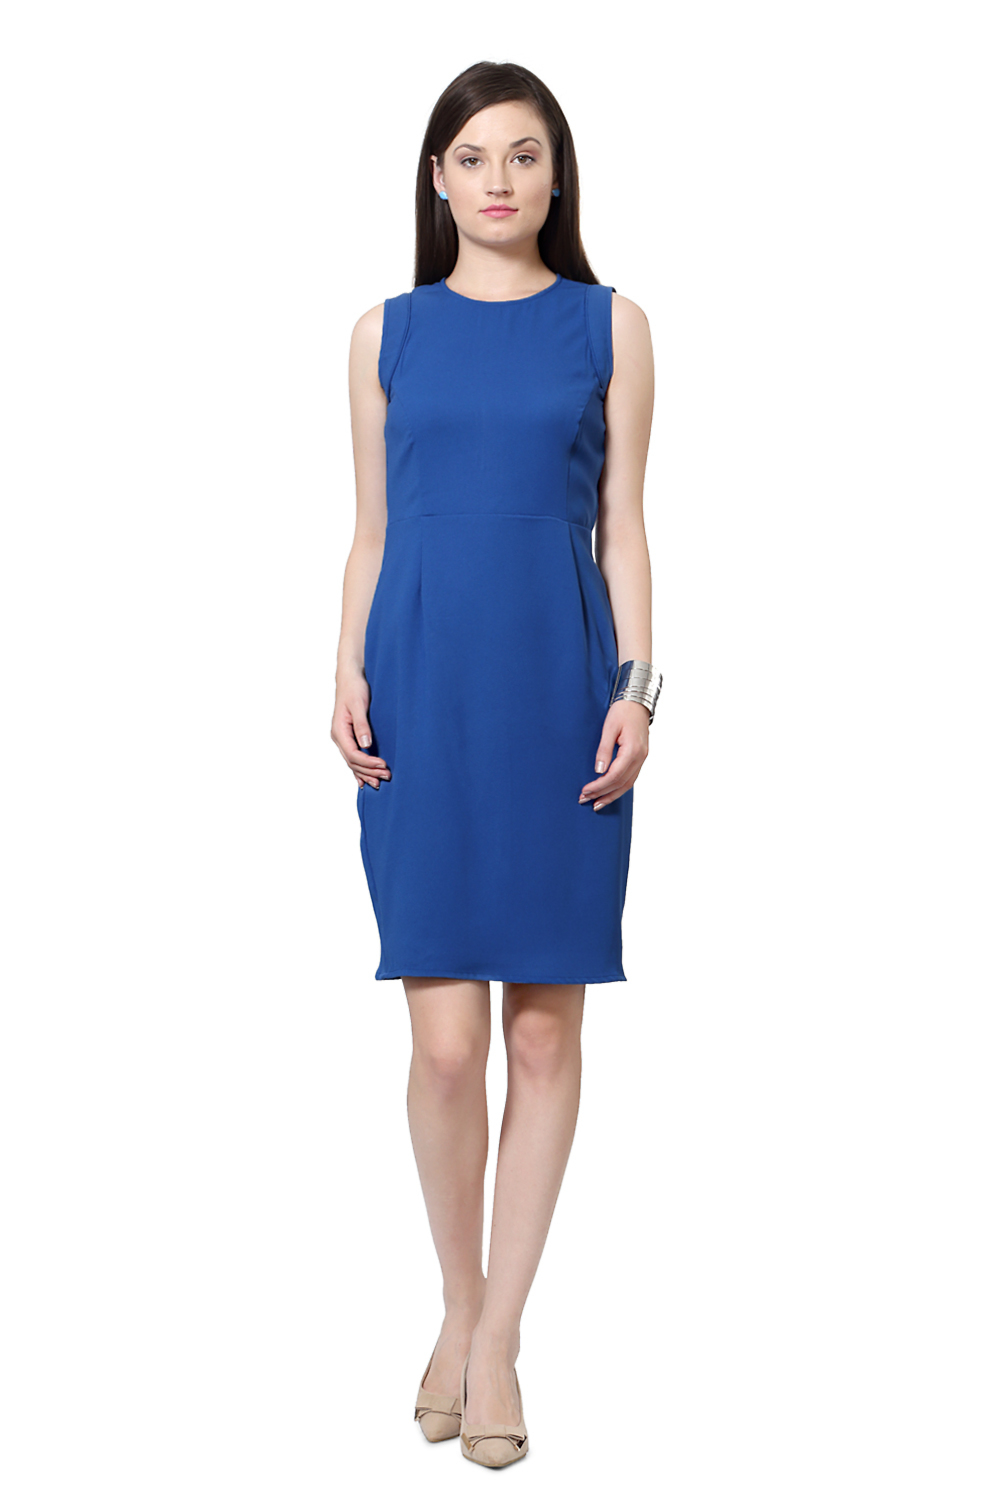 Beautiful The Indian Business Of Van Heusen Is Planning A Network Of Stores Targeting Solely Women Van Heusen  Currently A Clubwear Brand, The Vdot Range Will Be Expanded To Provide Clothing For More Casual Occasions As Well Van Heusens